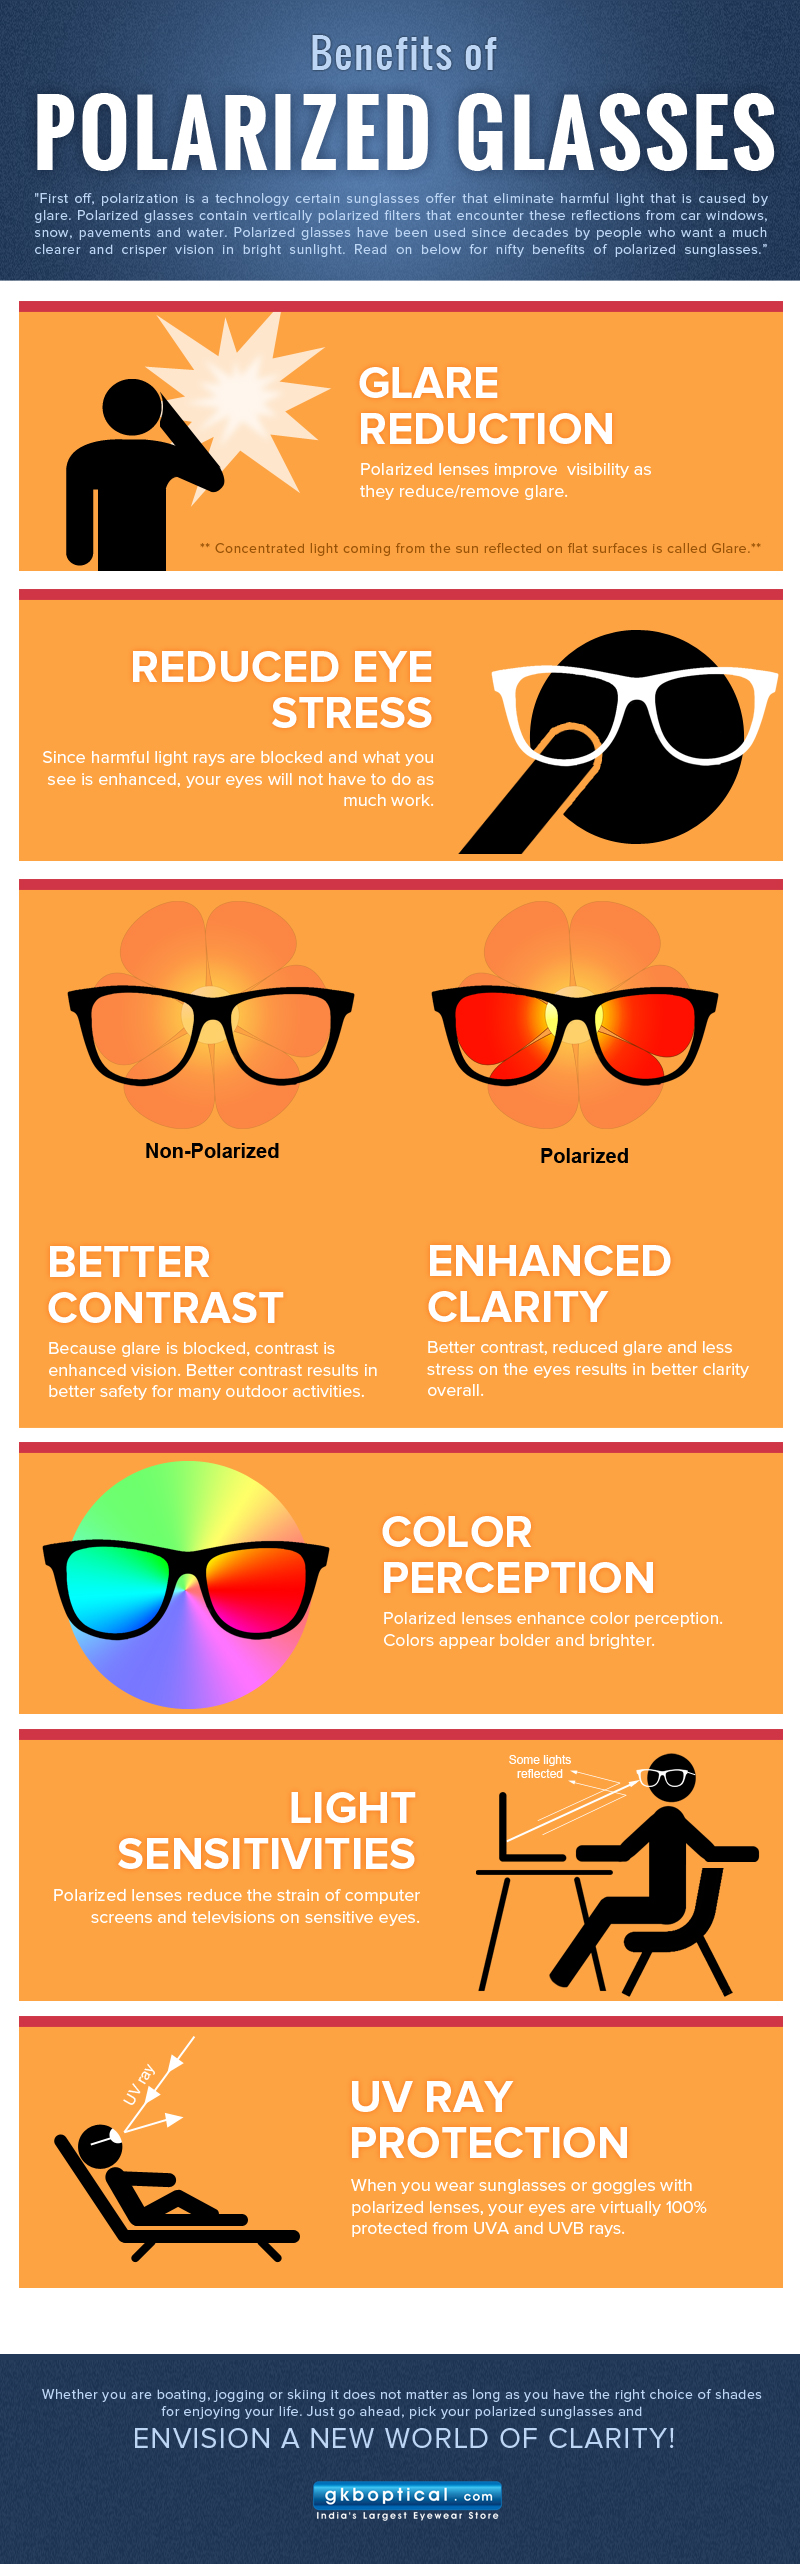 Benefits Of Polarized Sunglasses  qtoptometry benefits of polarized glasses